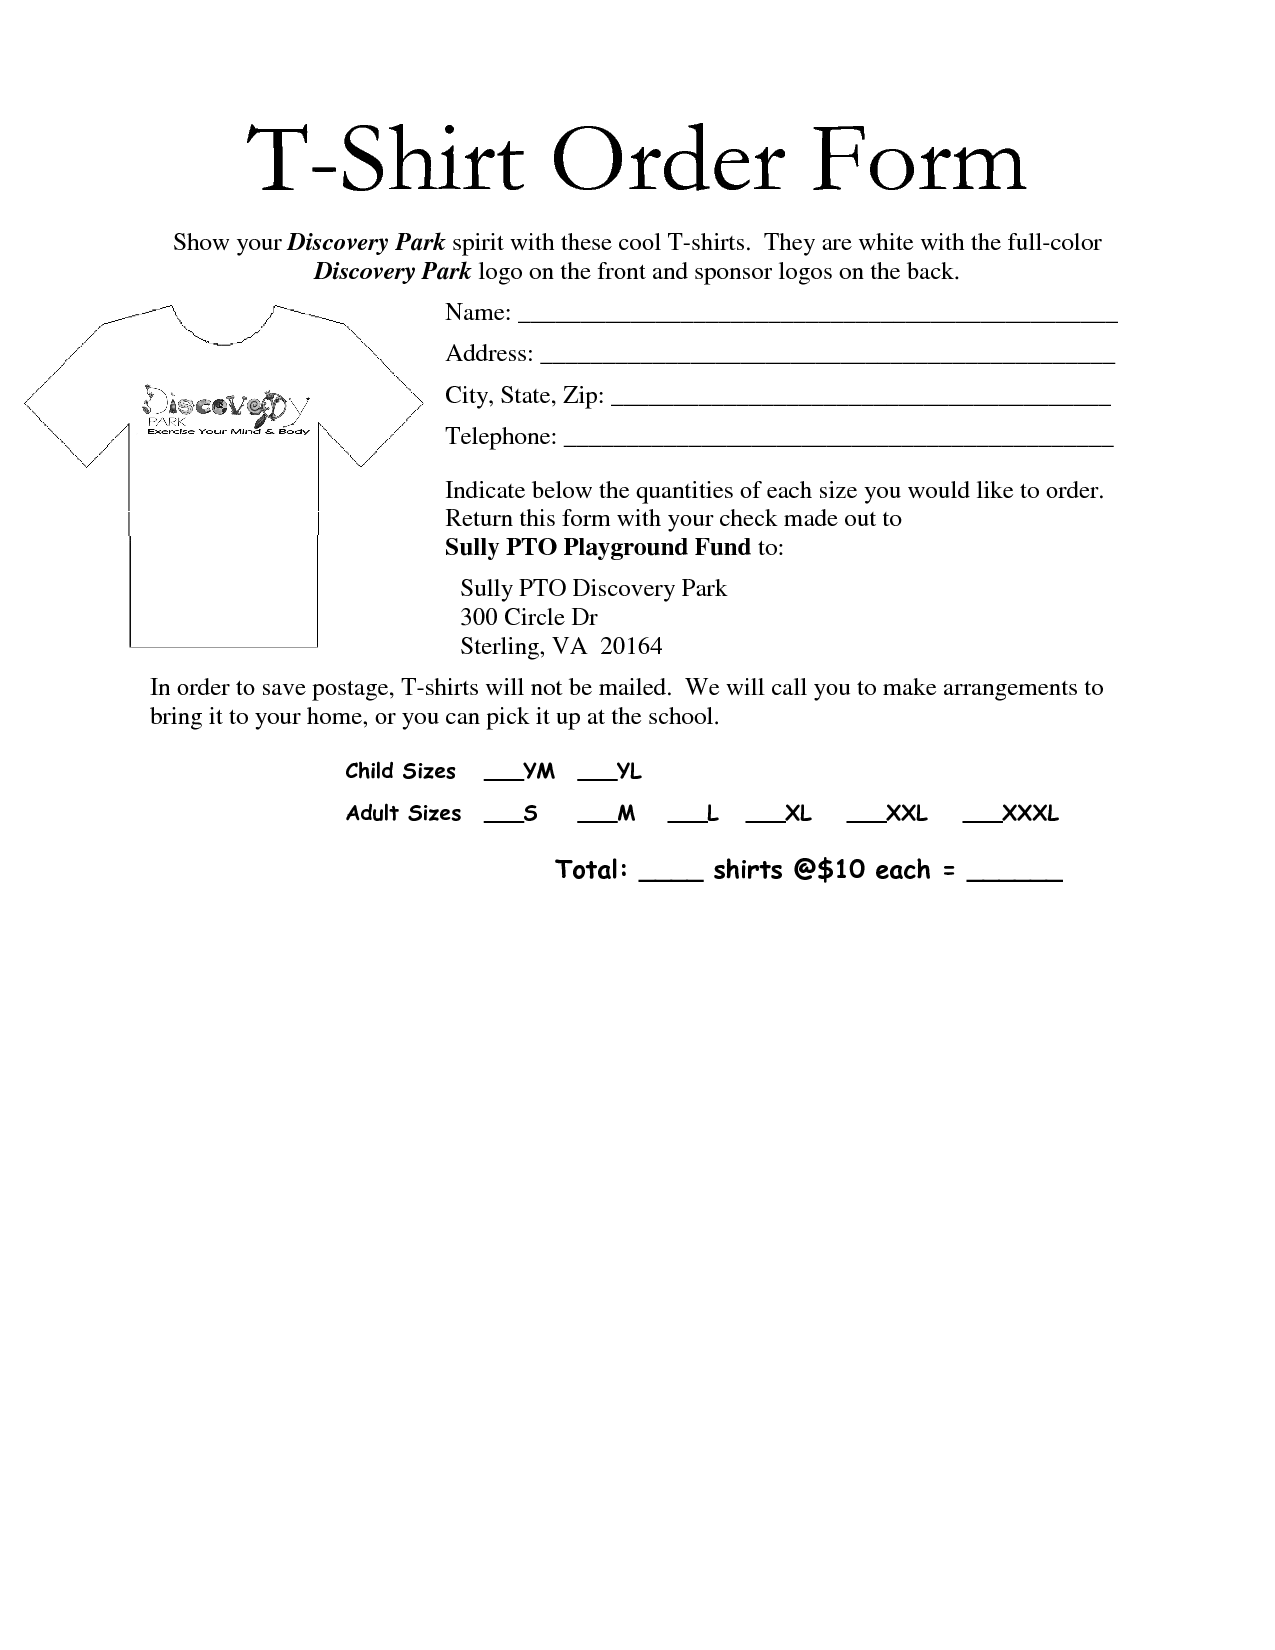 35 awesome t shirt order form template free images projects to try 35 awesome t shirt order form template free images wajeb Image collections